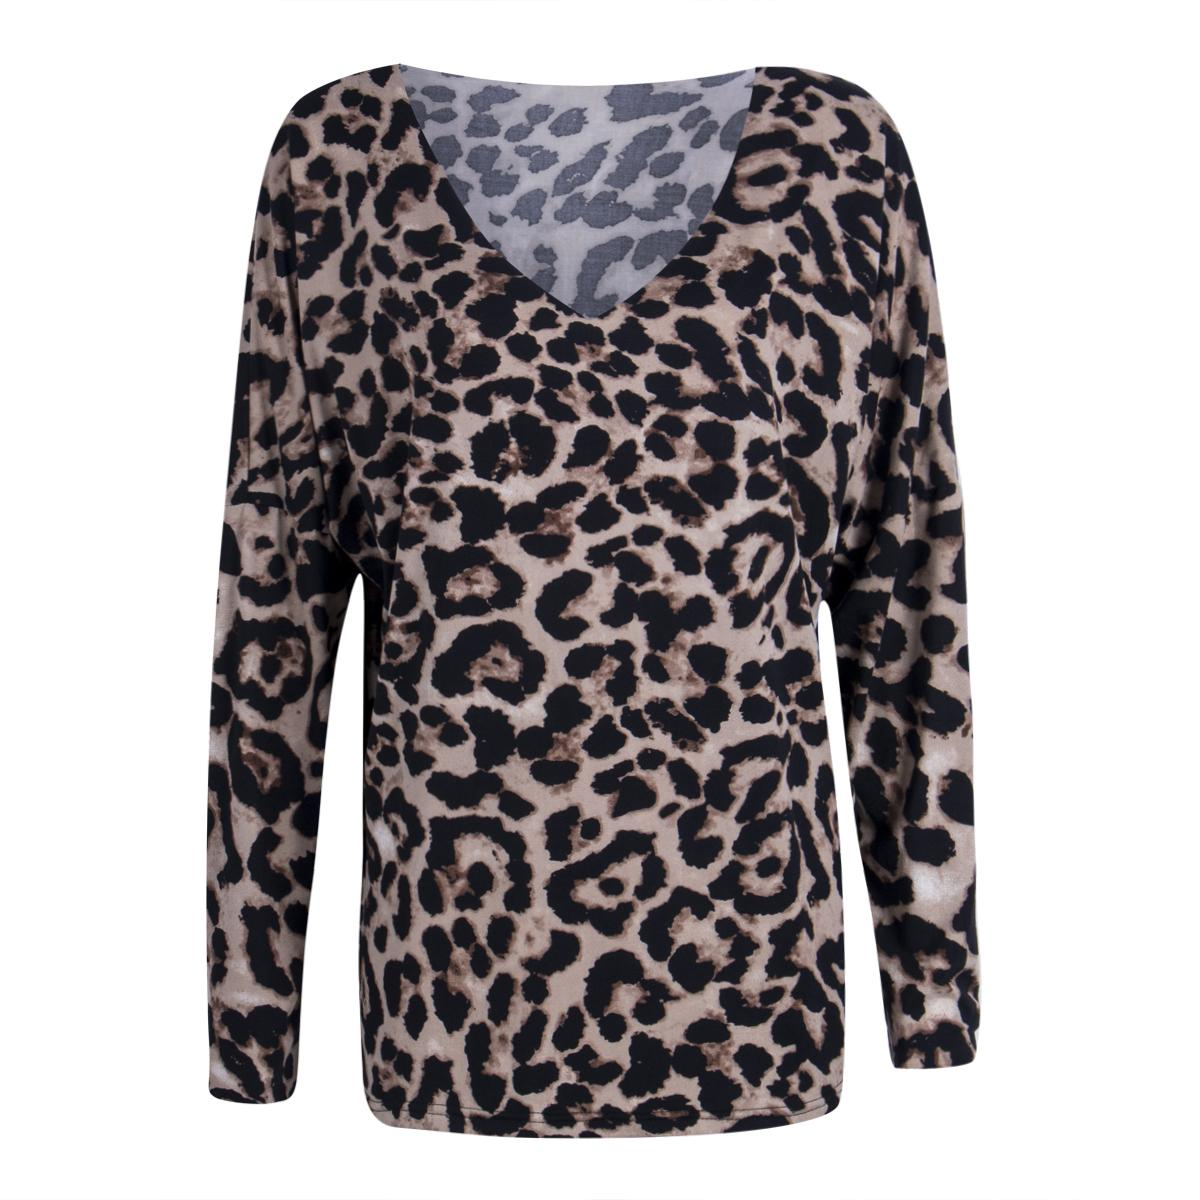 783bd613a2db Ladies Leopard Print Tops T Shirts Women Autumn Casual Long Sleeve V Neck  Loose Tee Shirt Shop For T Shirts Online T Shirt With A T Shirt On It From  ...